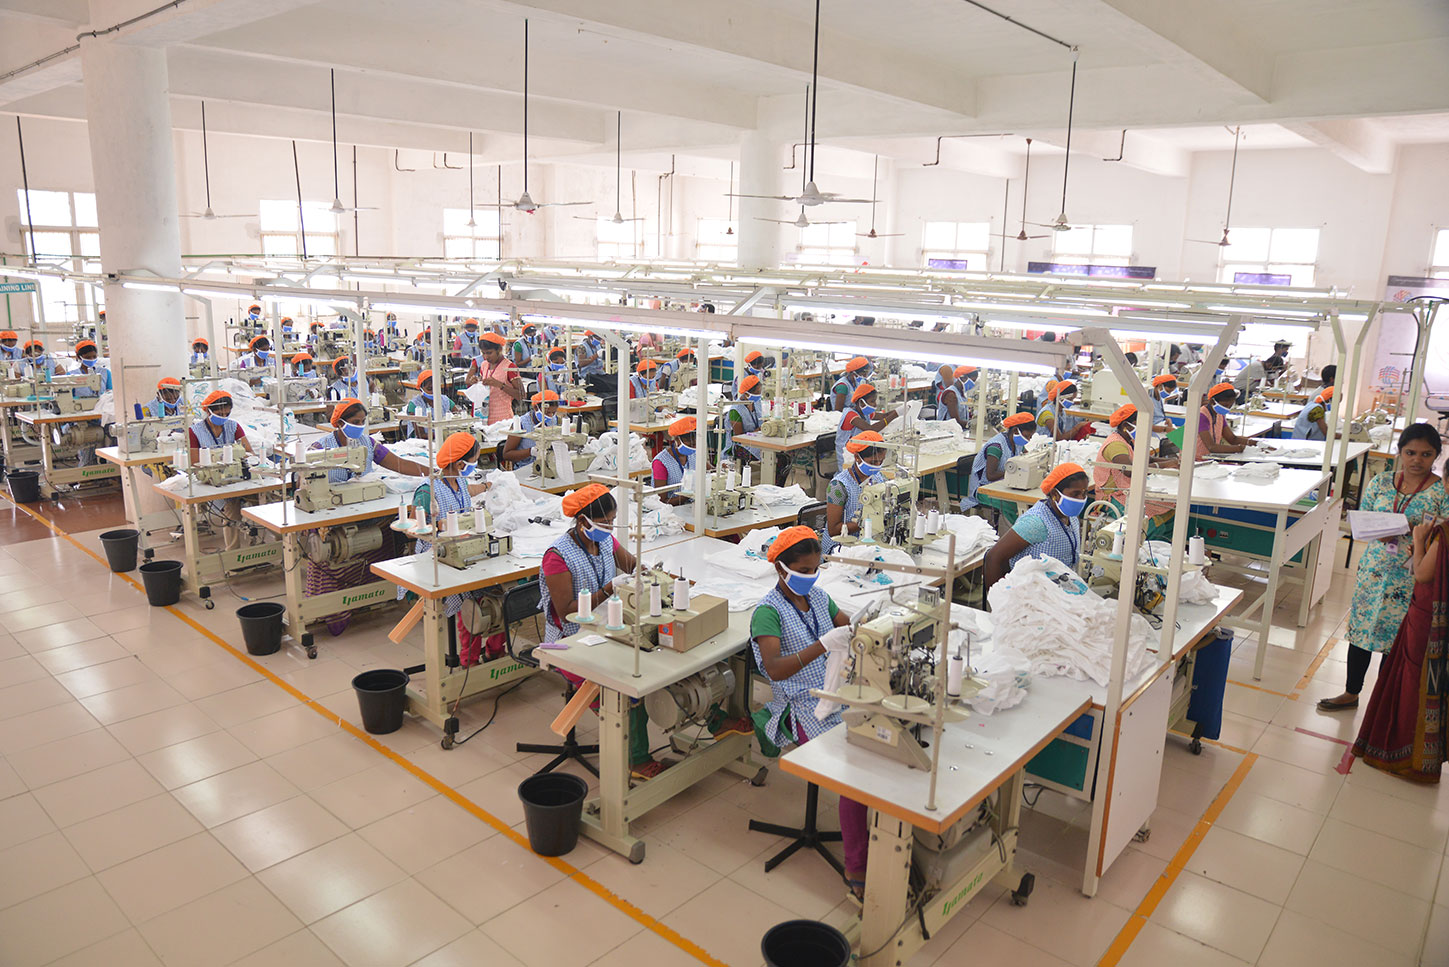 Made-to-order garment manufacturing